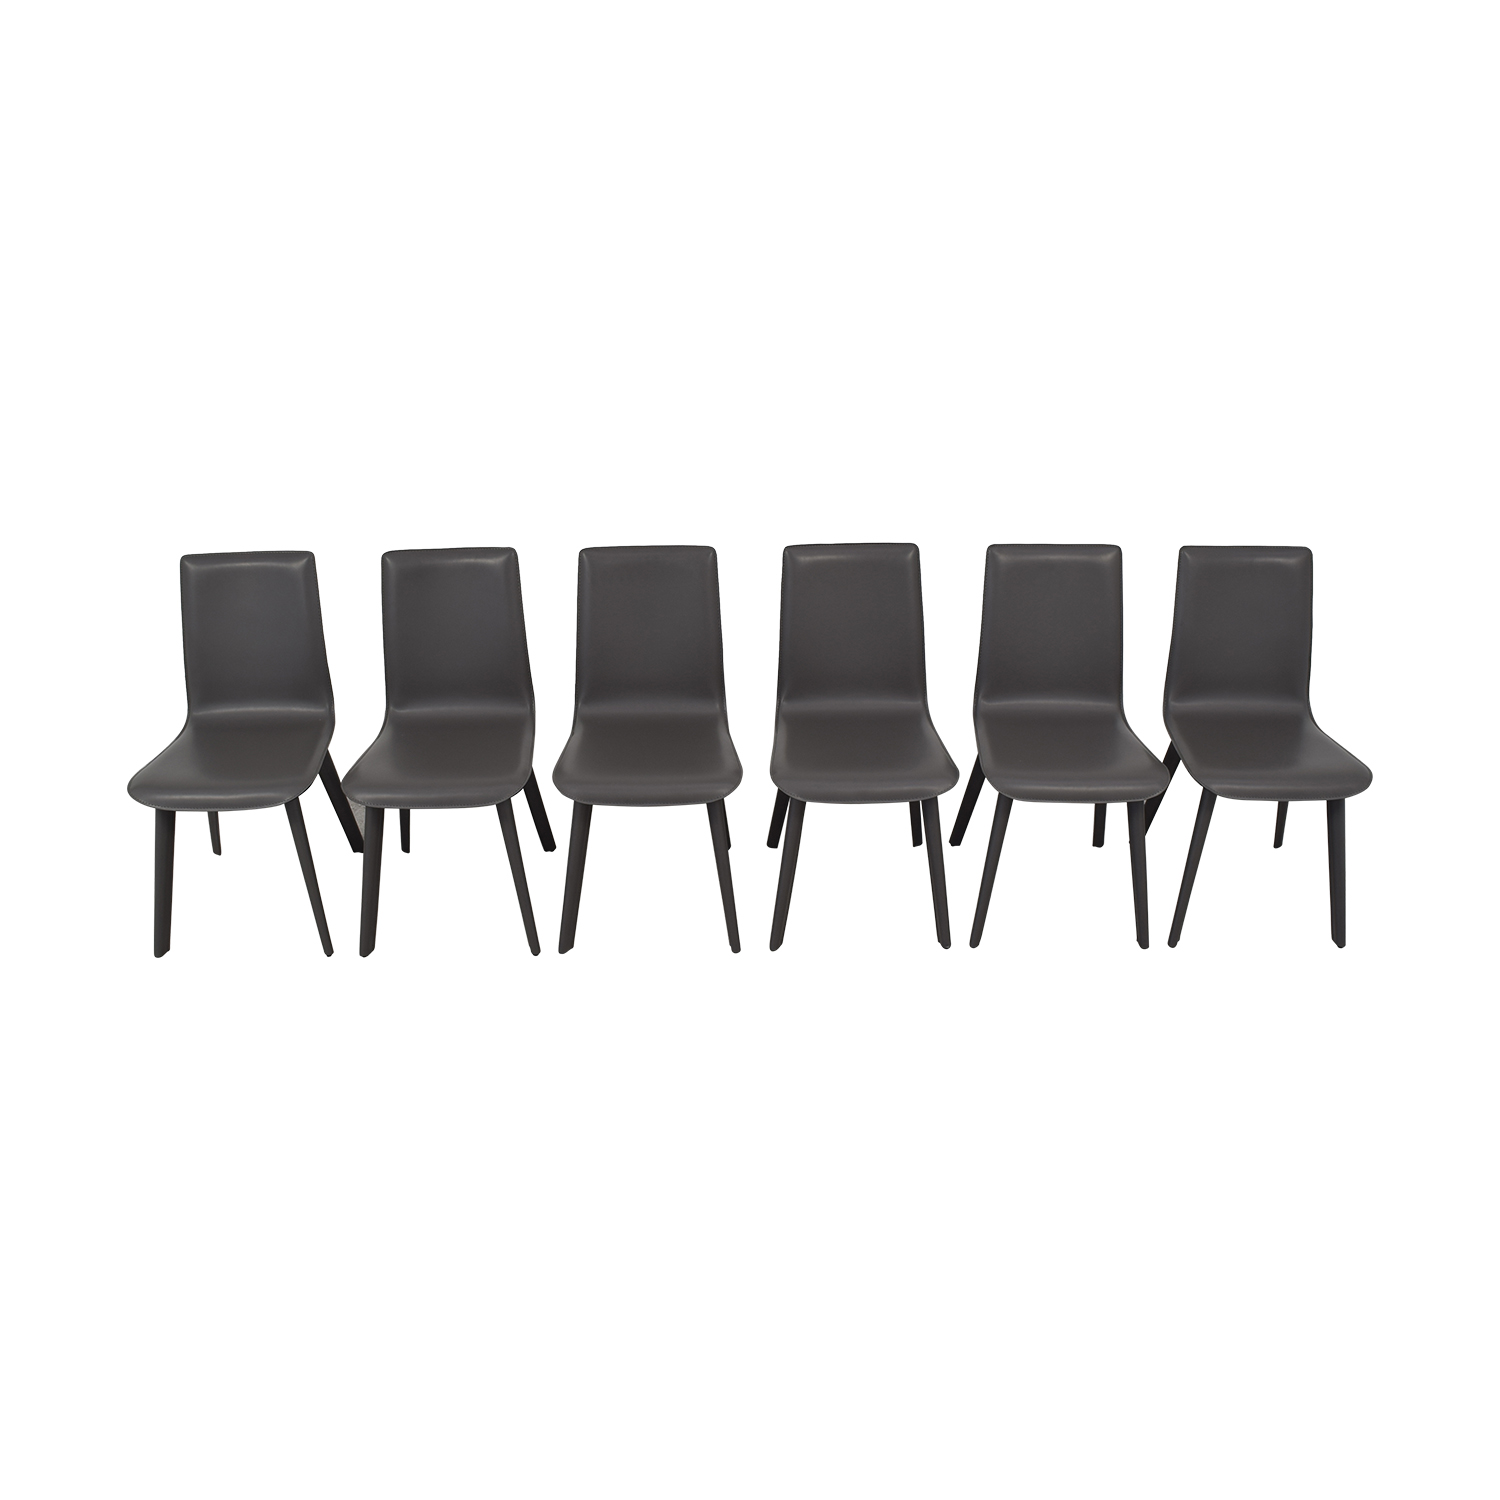 Room & Board Room & Board Hirsch Dining Chairs